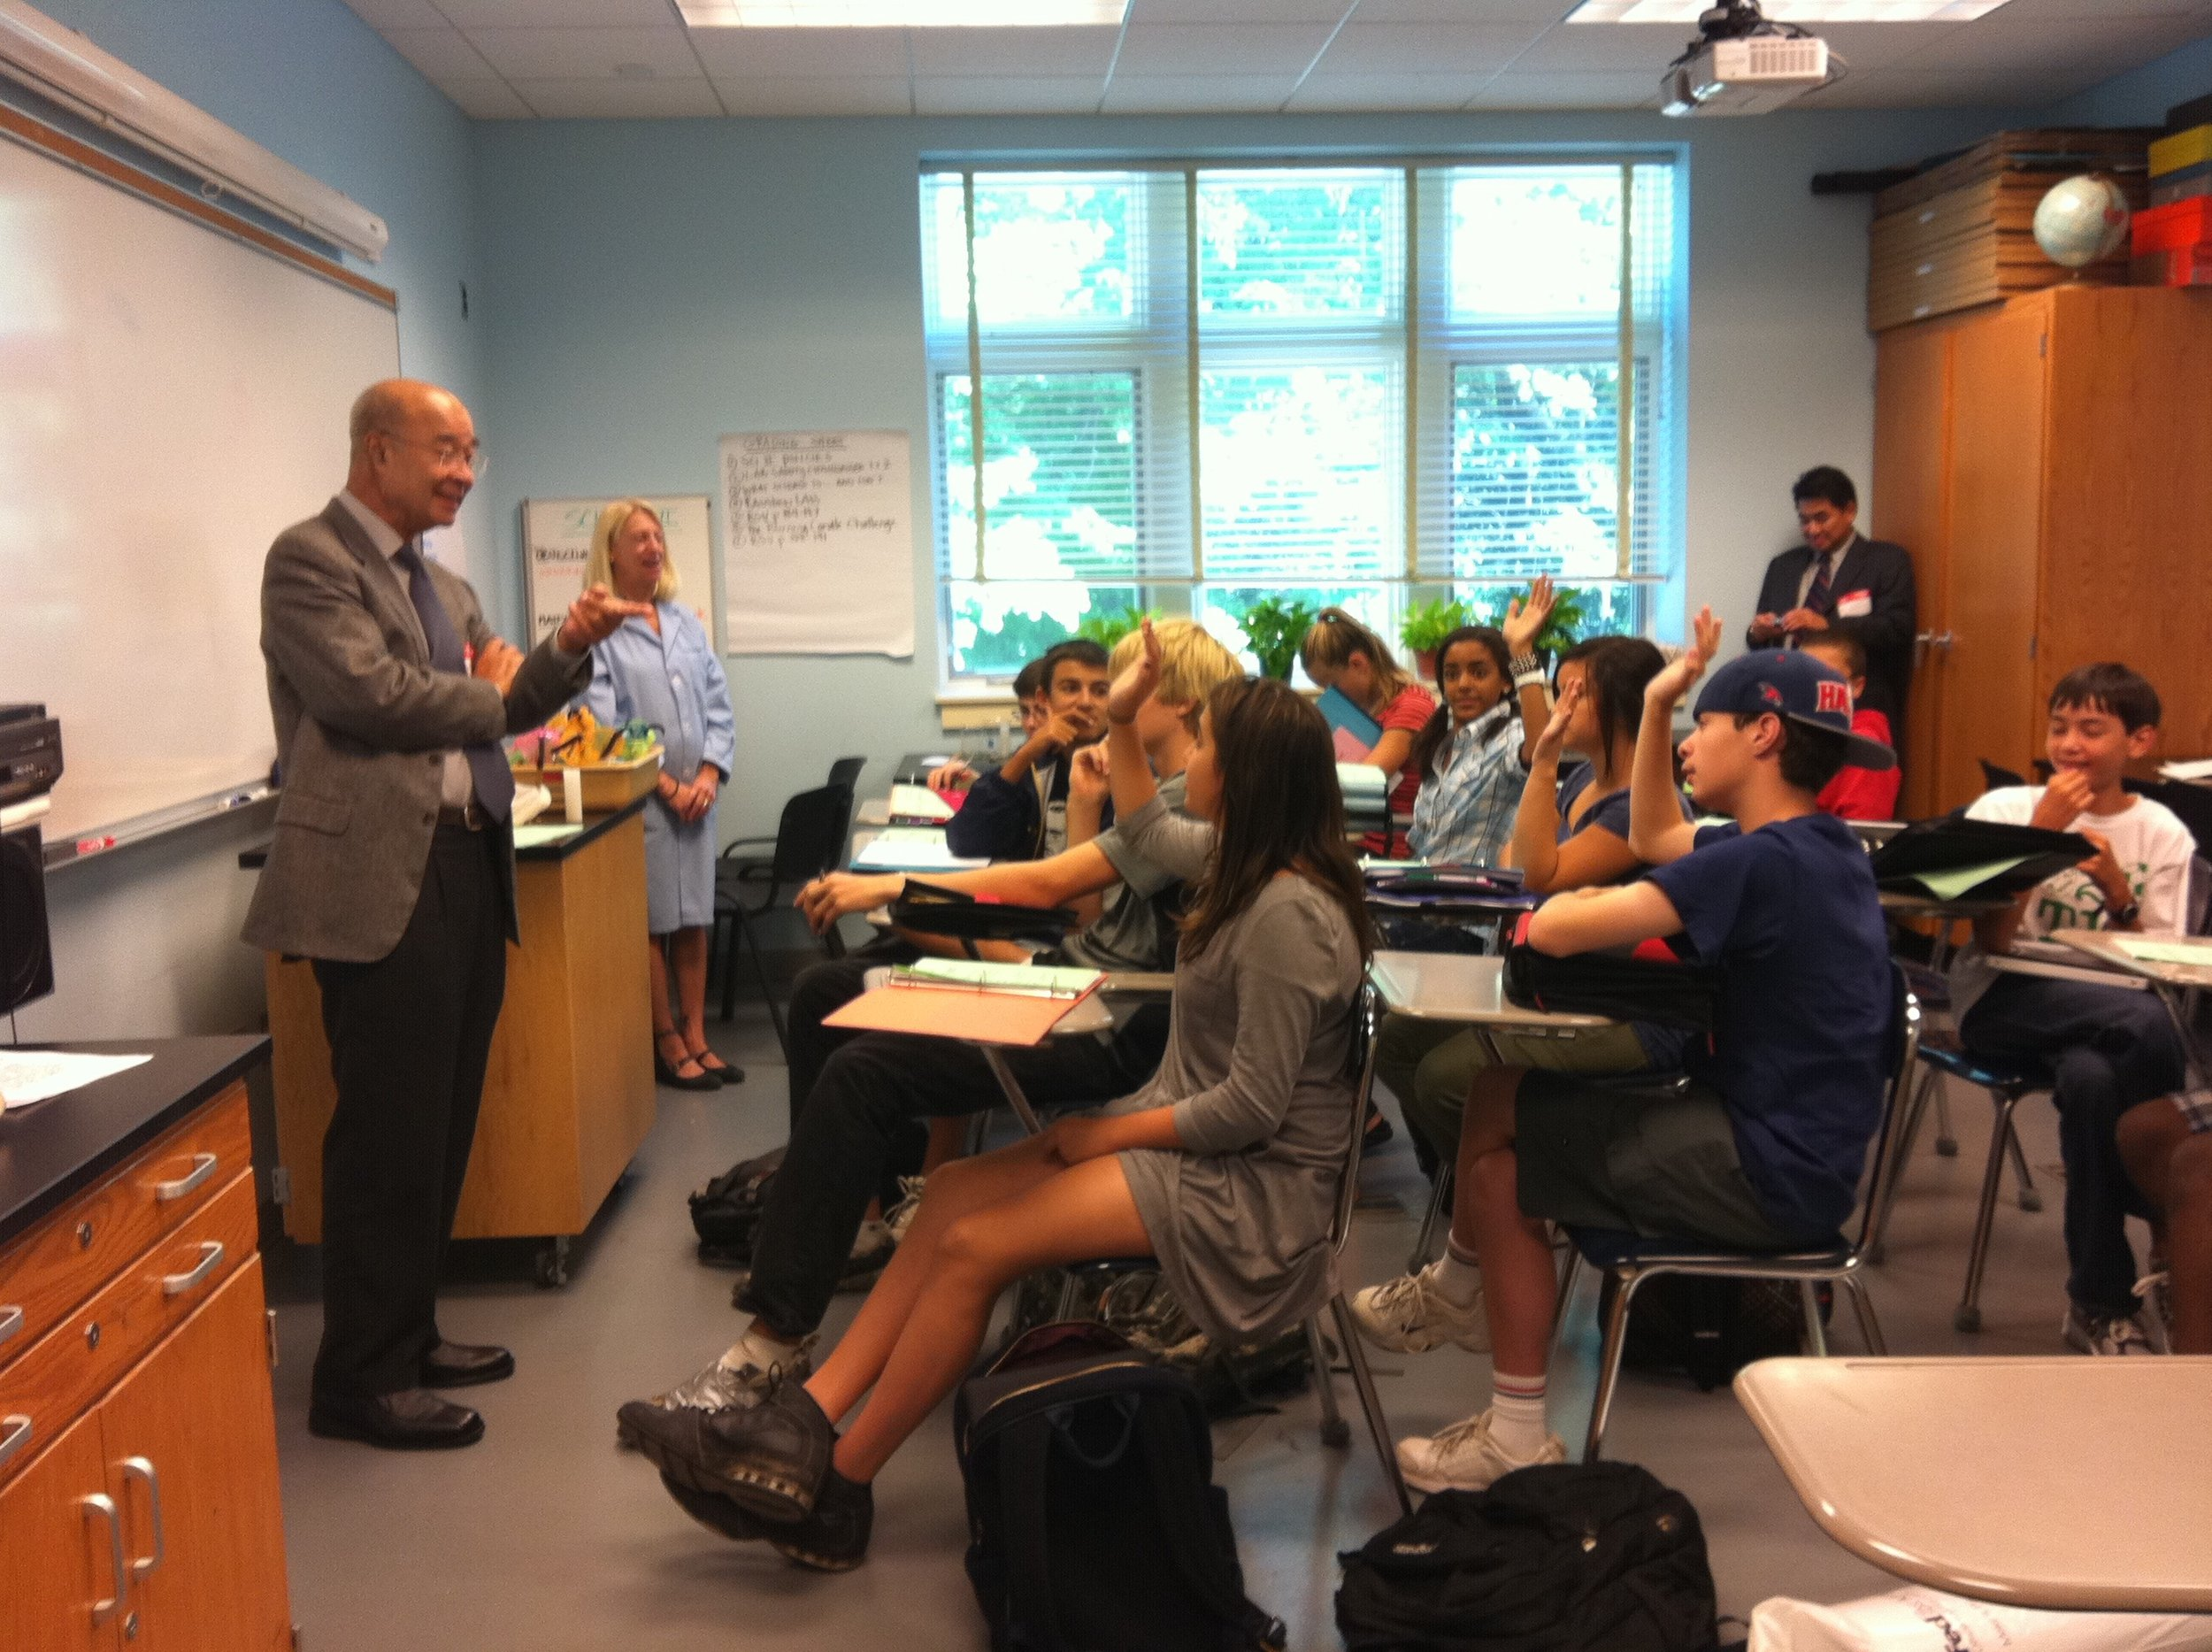 Speaking engagements at local high schools -